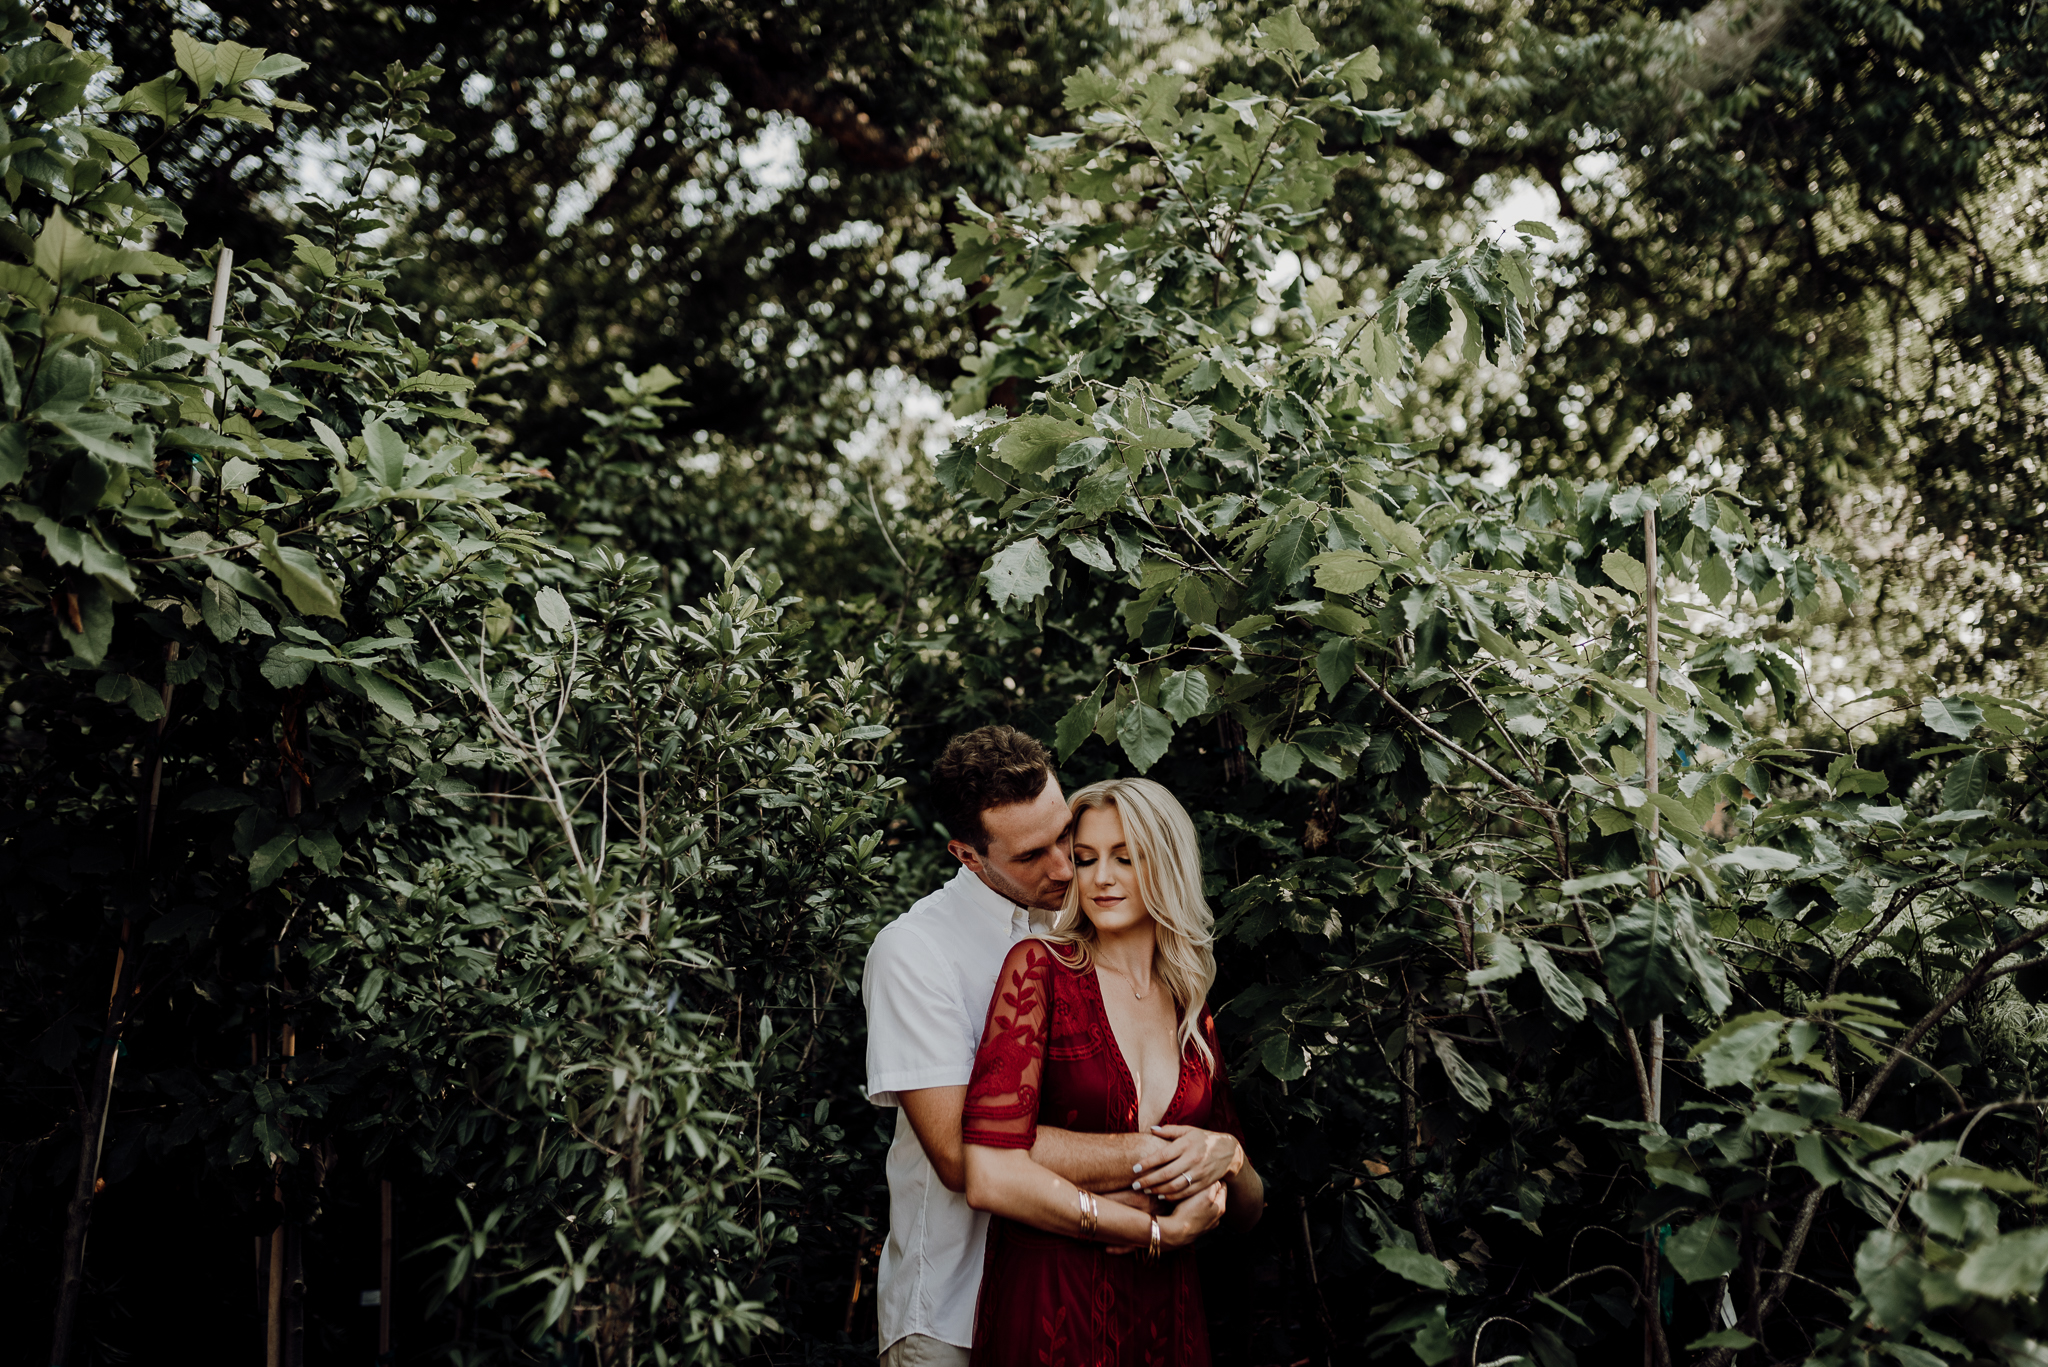 kristen giles photography | texas wedding photographer - austin plant shop engagement session-17-blog.jpg